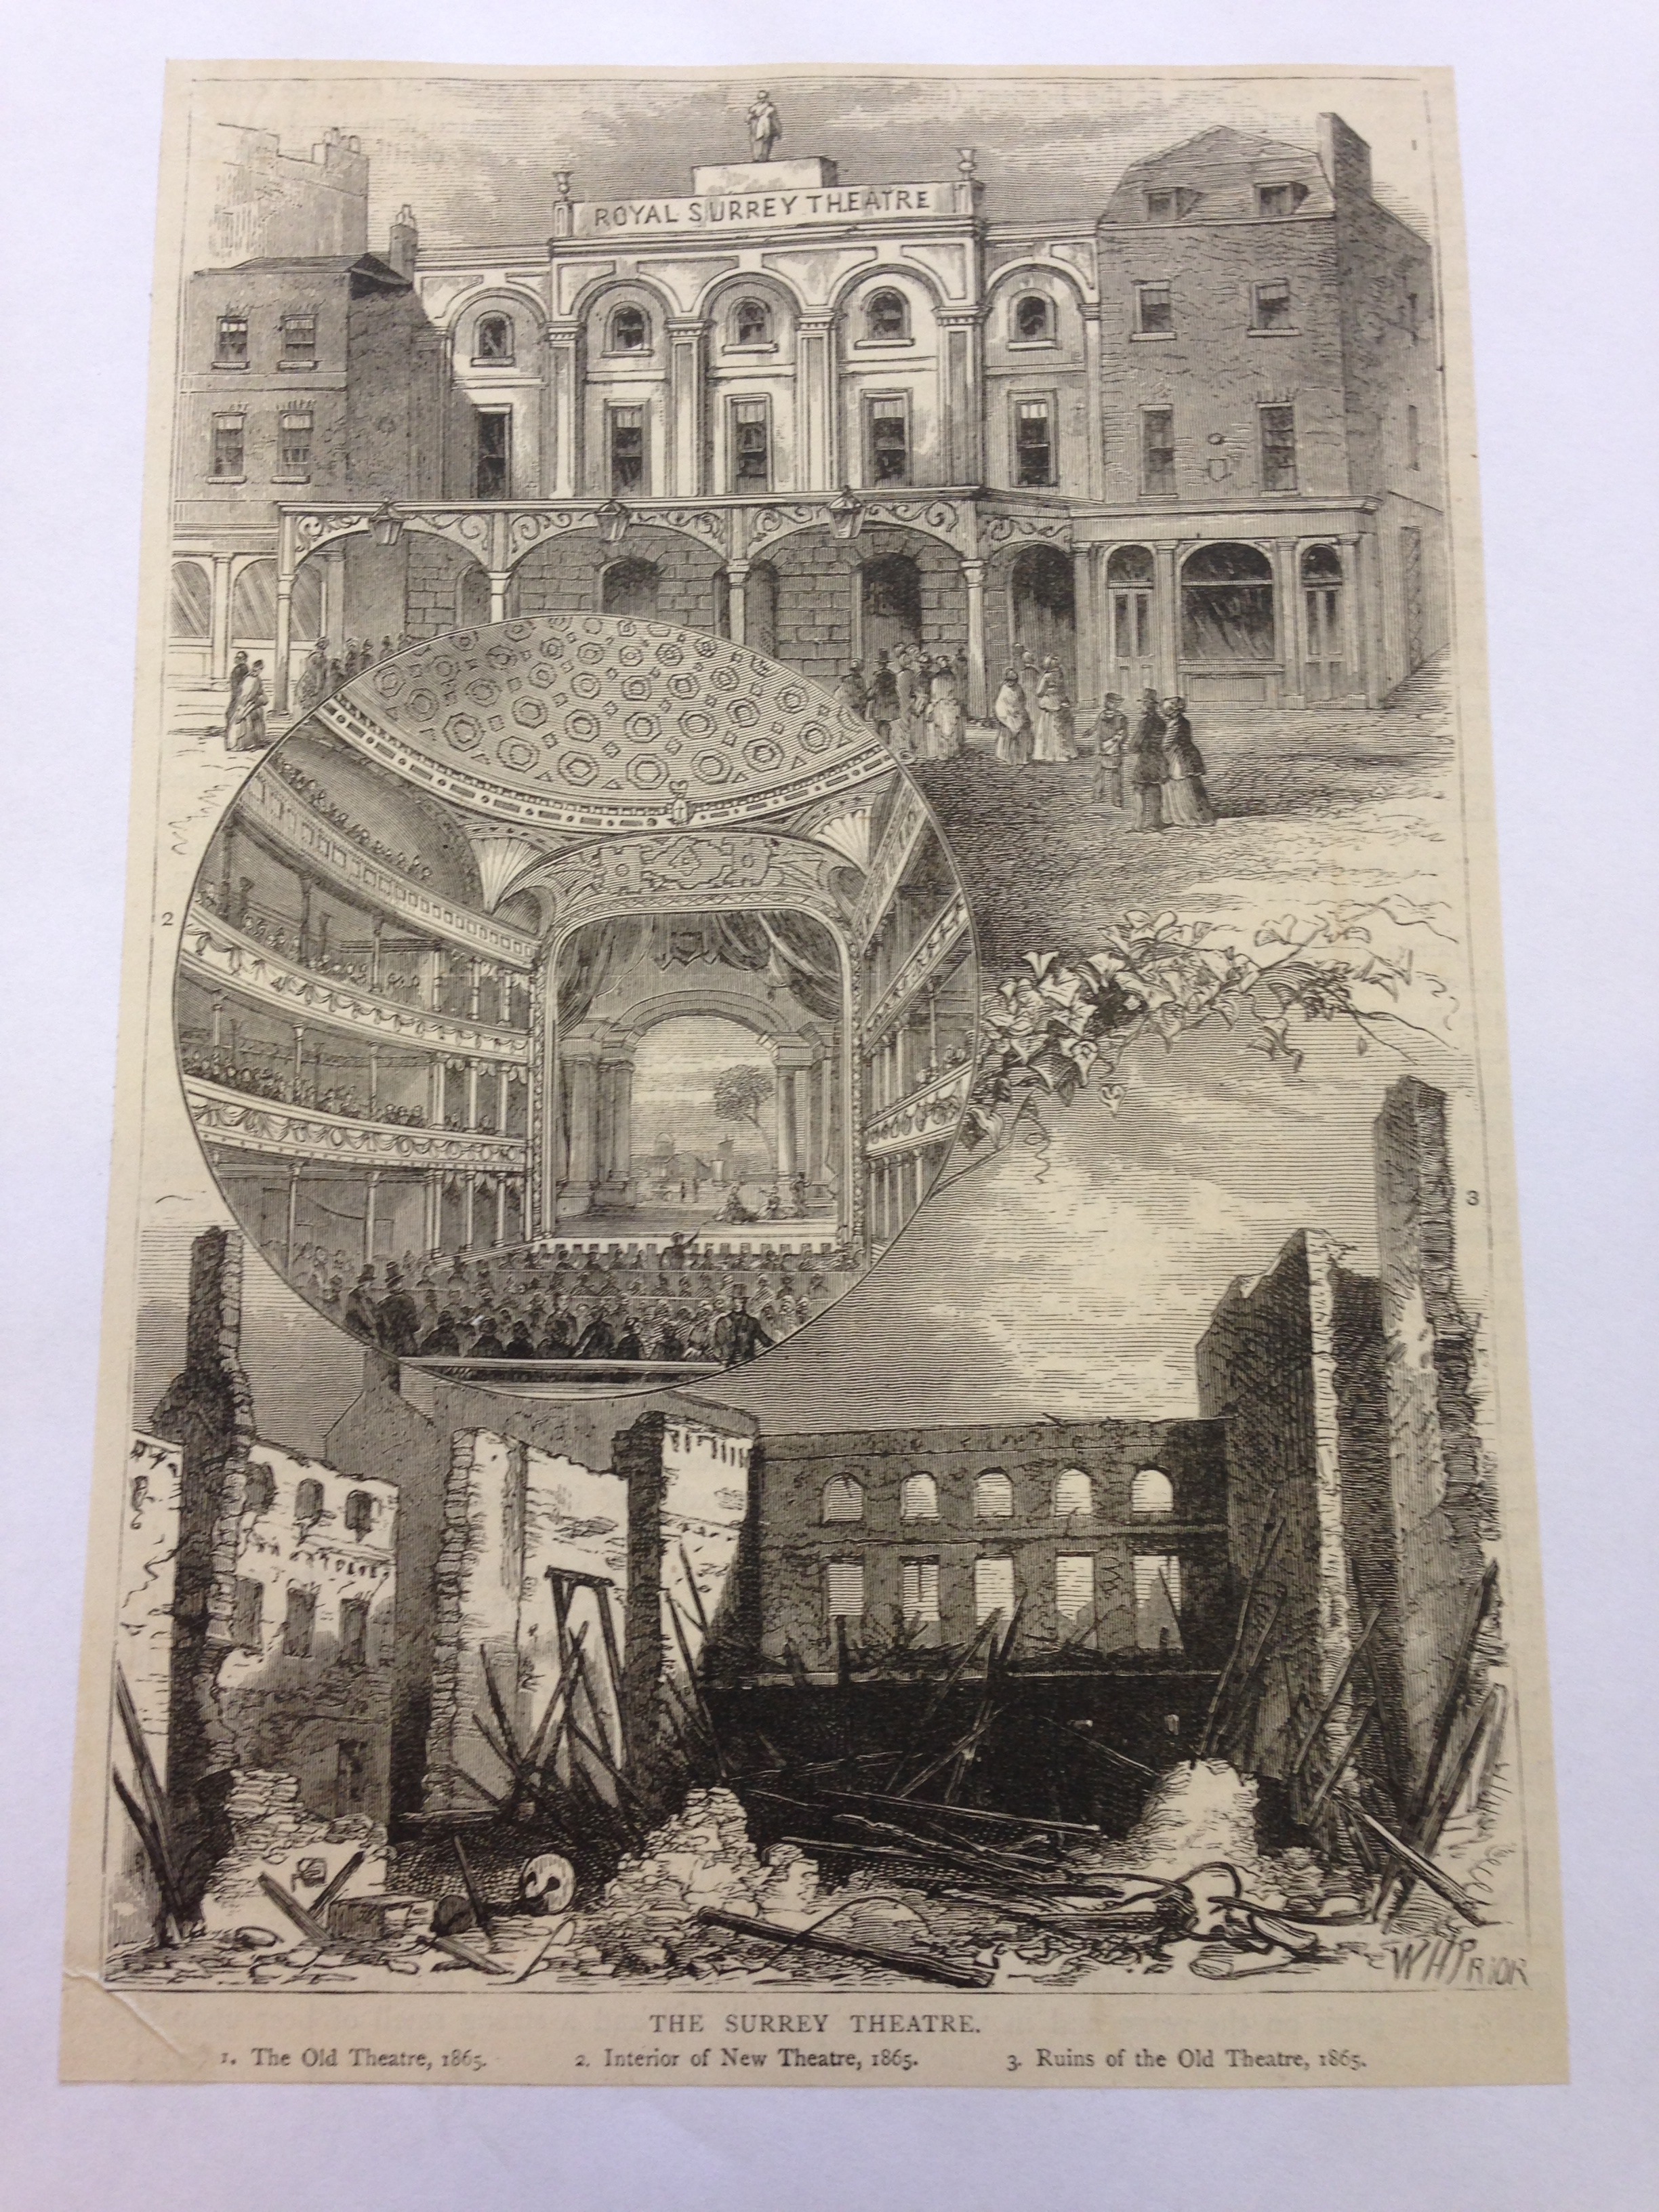 <b>Surrey Theatre</b>     	</br>An illustration of the destruction and reconstruction of the Surrey Theatre, London, 1865.</br><br/><b>Source: </b><i>Used with permission from the University of Bristol Theatre Collection.</i>